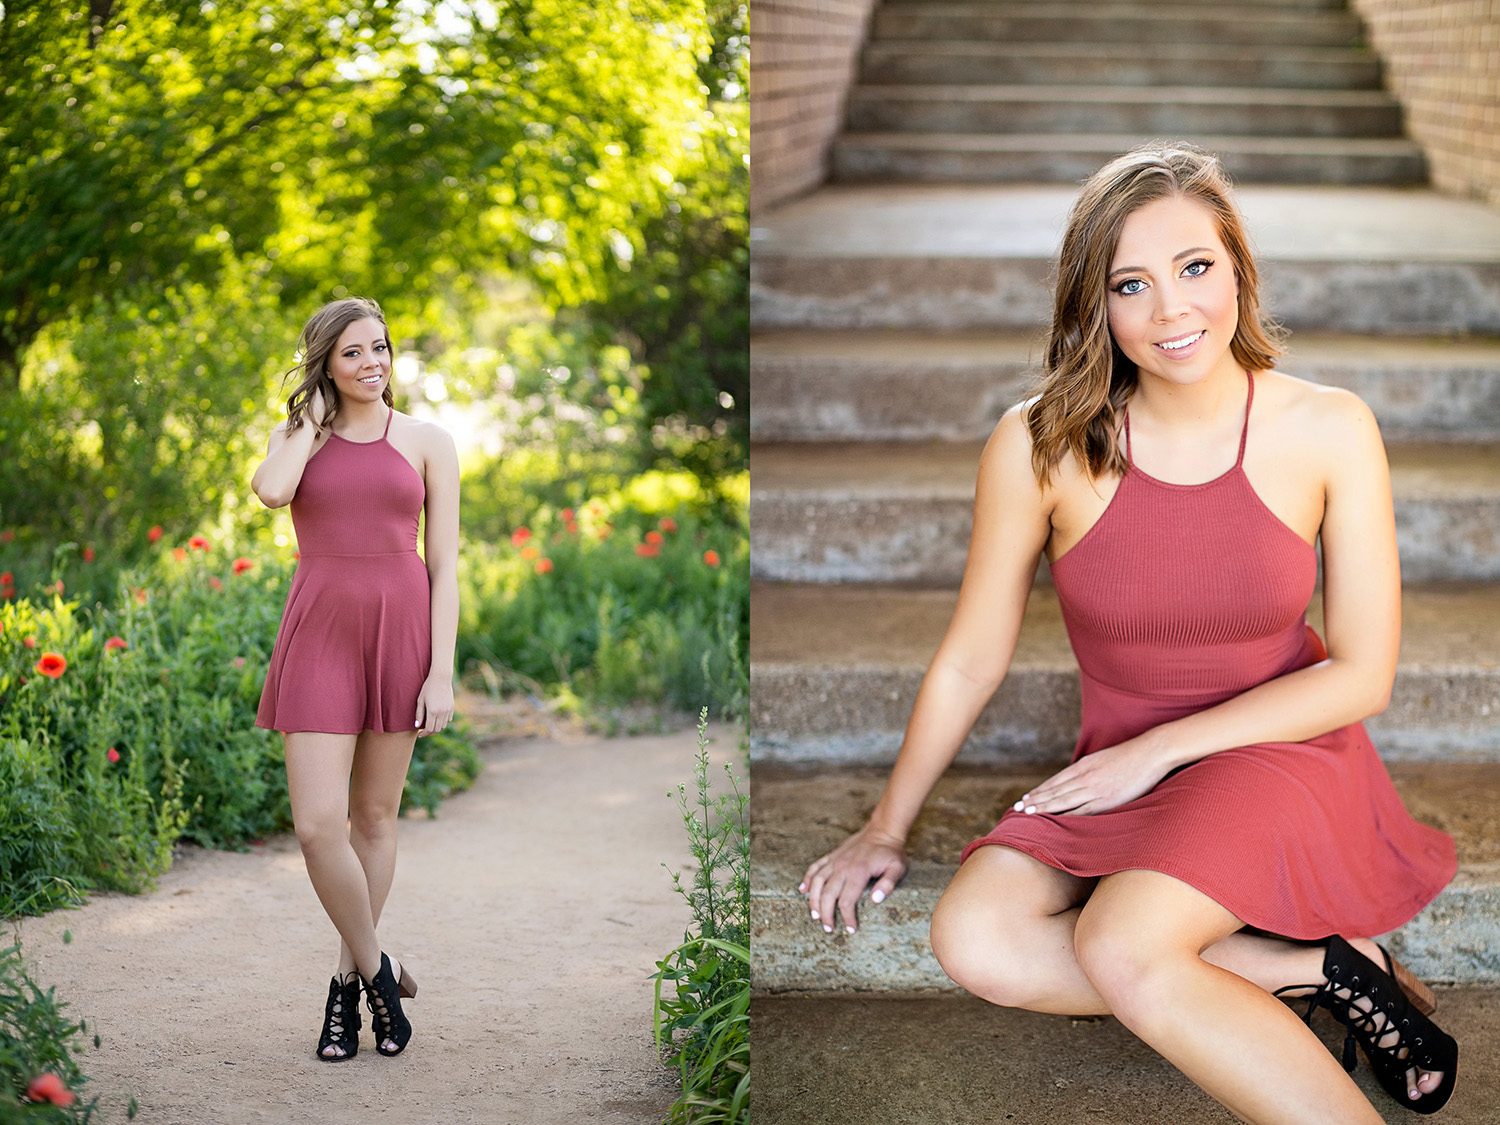 katelin-texas-tech-senior-trellis-green-wall-downtown-lubbock-03.jpg